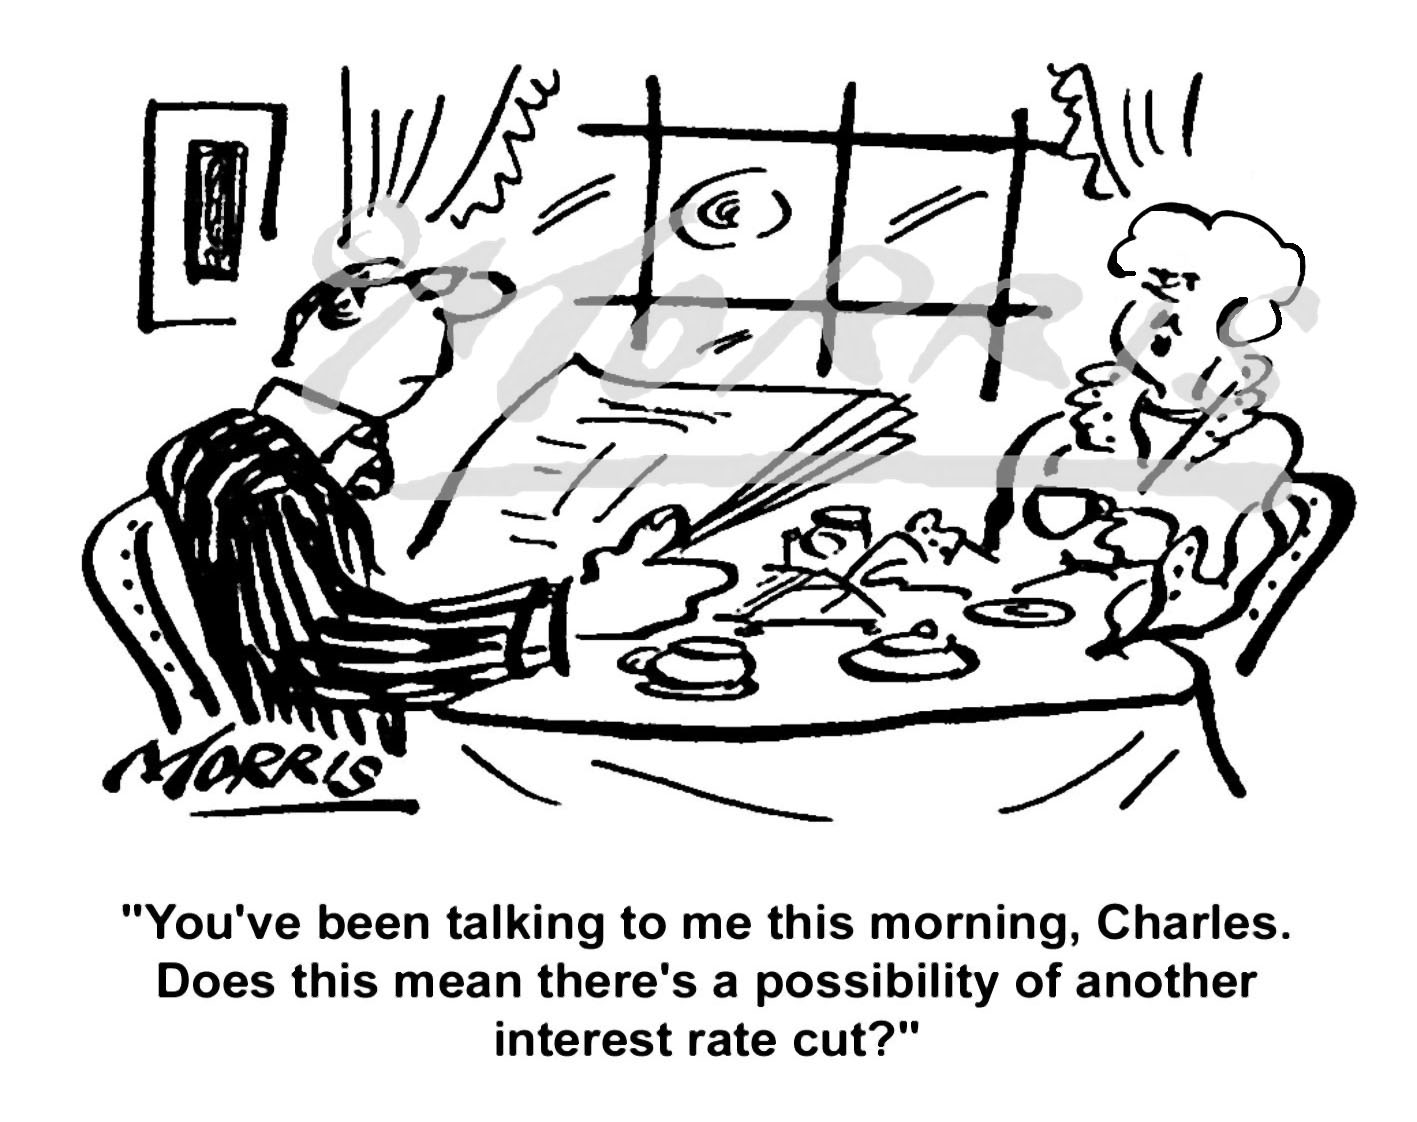 Interest rate cut cartoon Ref: 0459bw